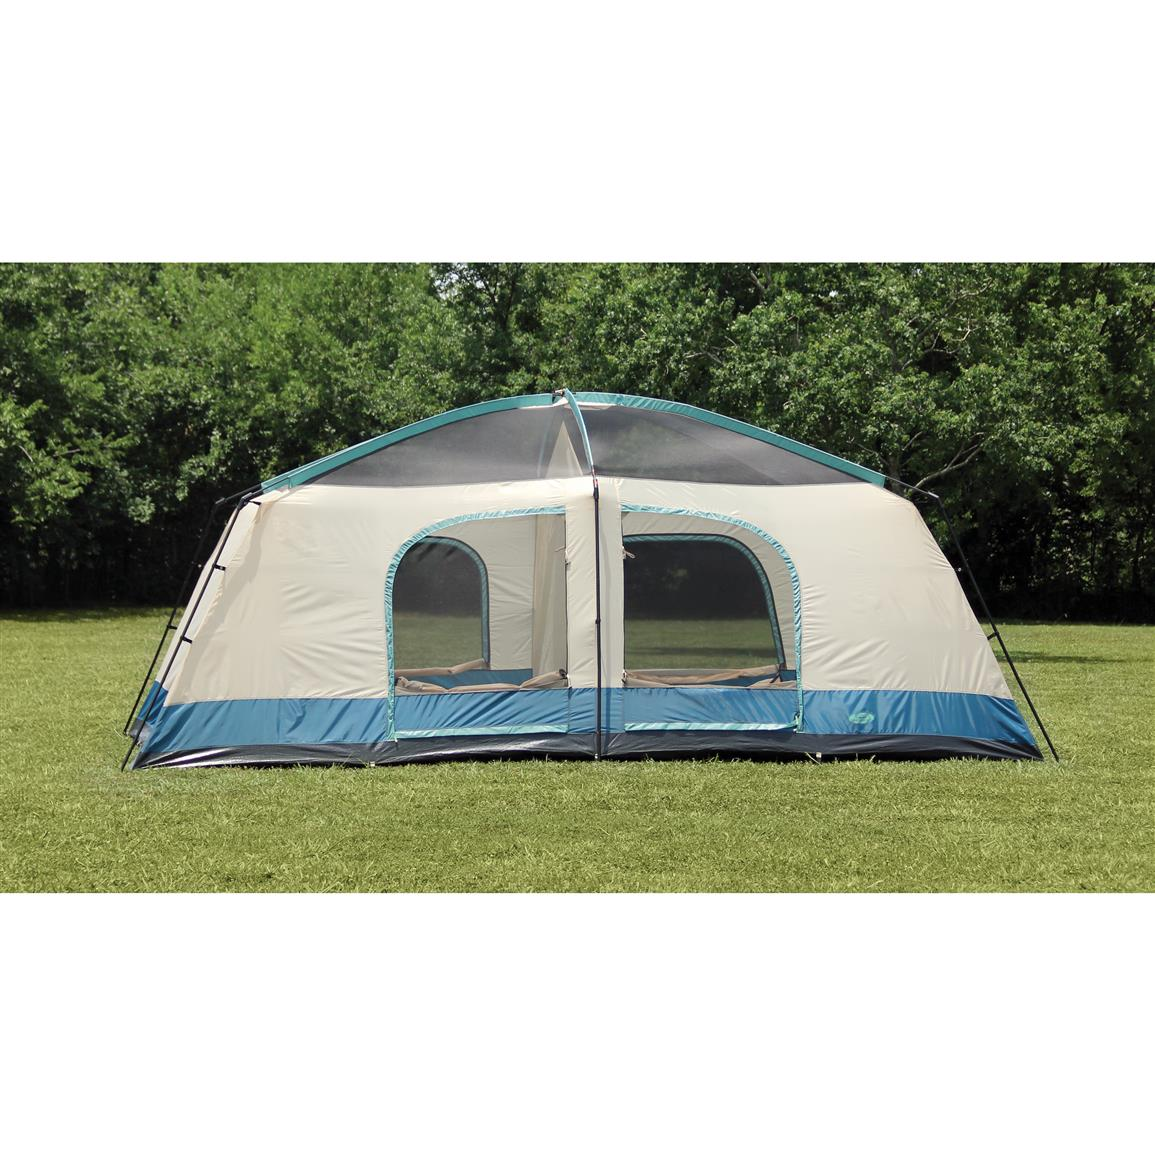 6 rust-resistant 3/4  powder-coated chain-corded steel  sc 1 st  Sportsmanu0027s Guide & Texsport Blue Mountain 2-Room Cabin Dome Tent - 656533 Cabin ...